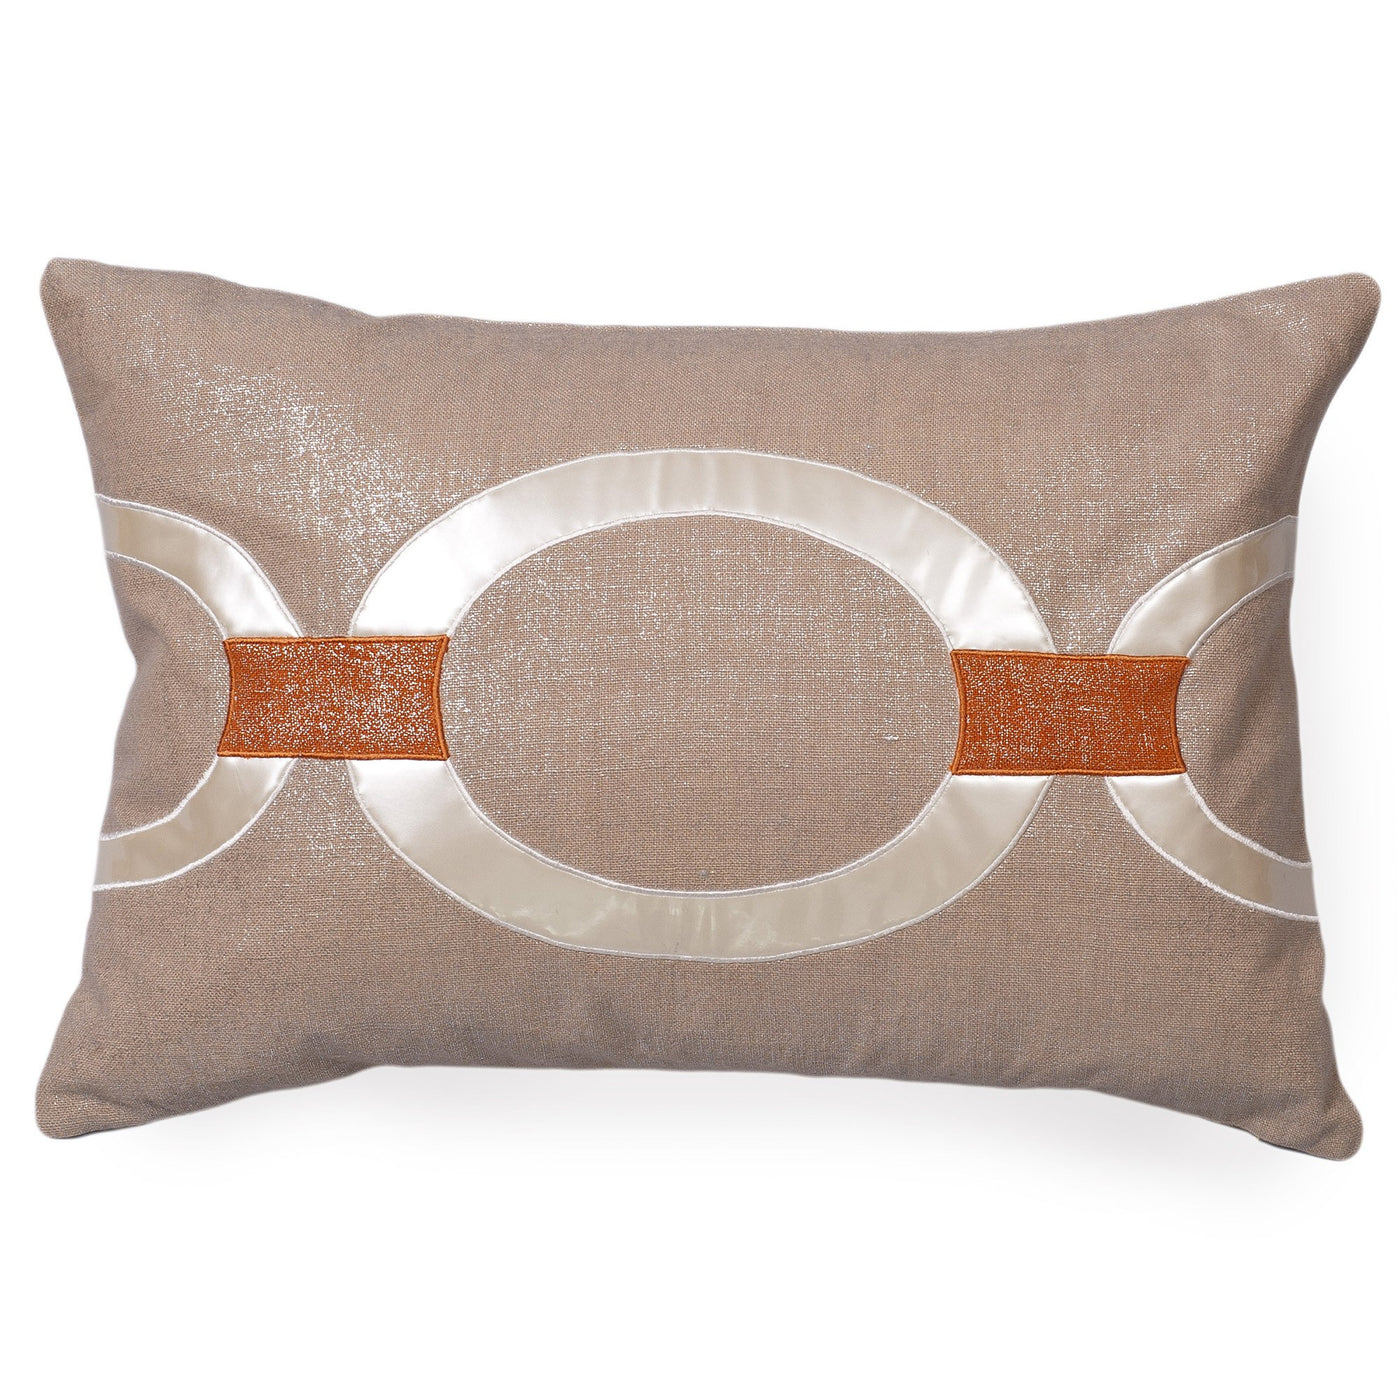 Hunter Pillow - Flax